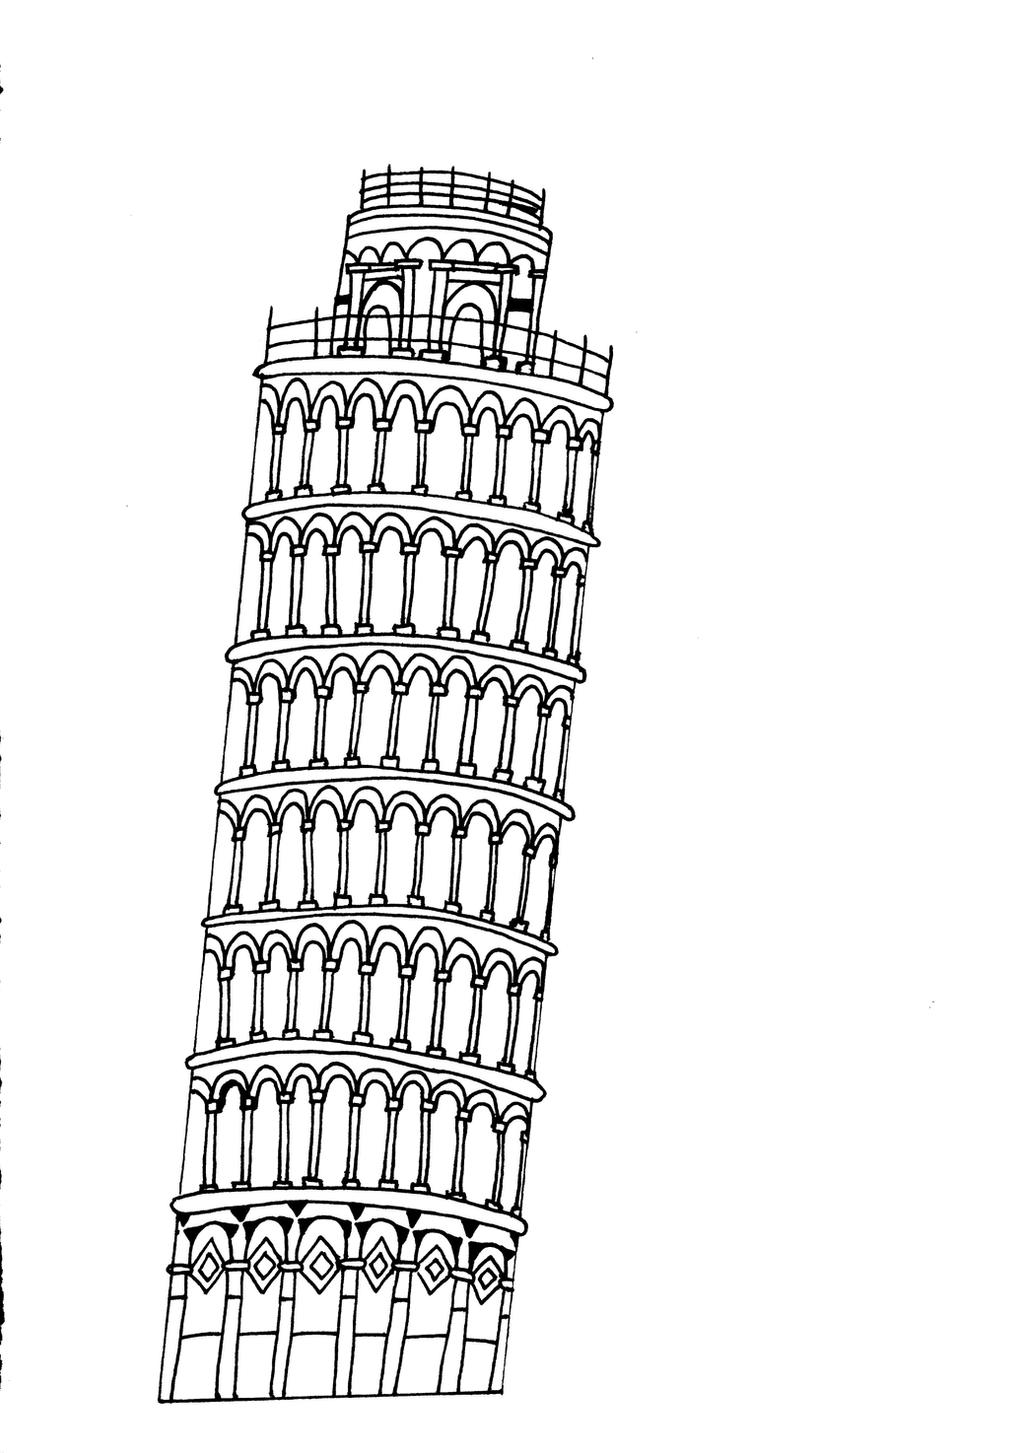 Leaning Tower Of Pisa Detail By Emzocreations On Deviantart Leaning Tower Of Pisa Coloring Page